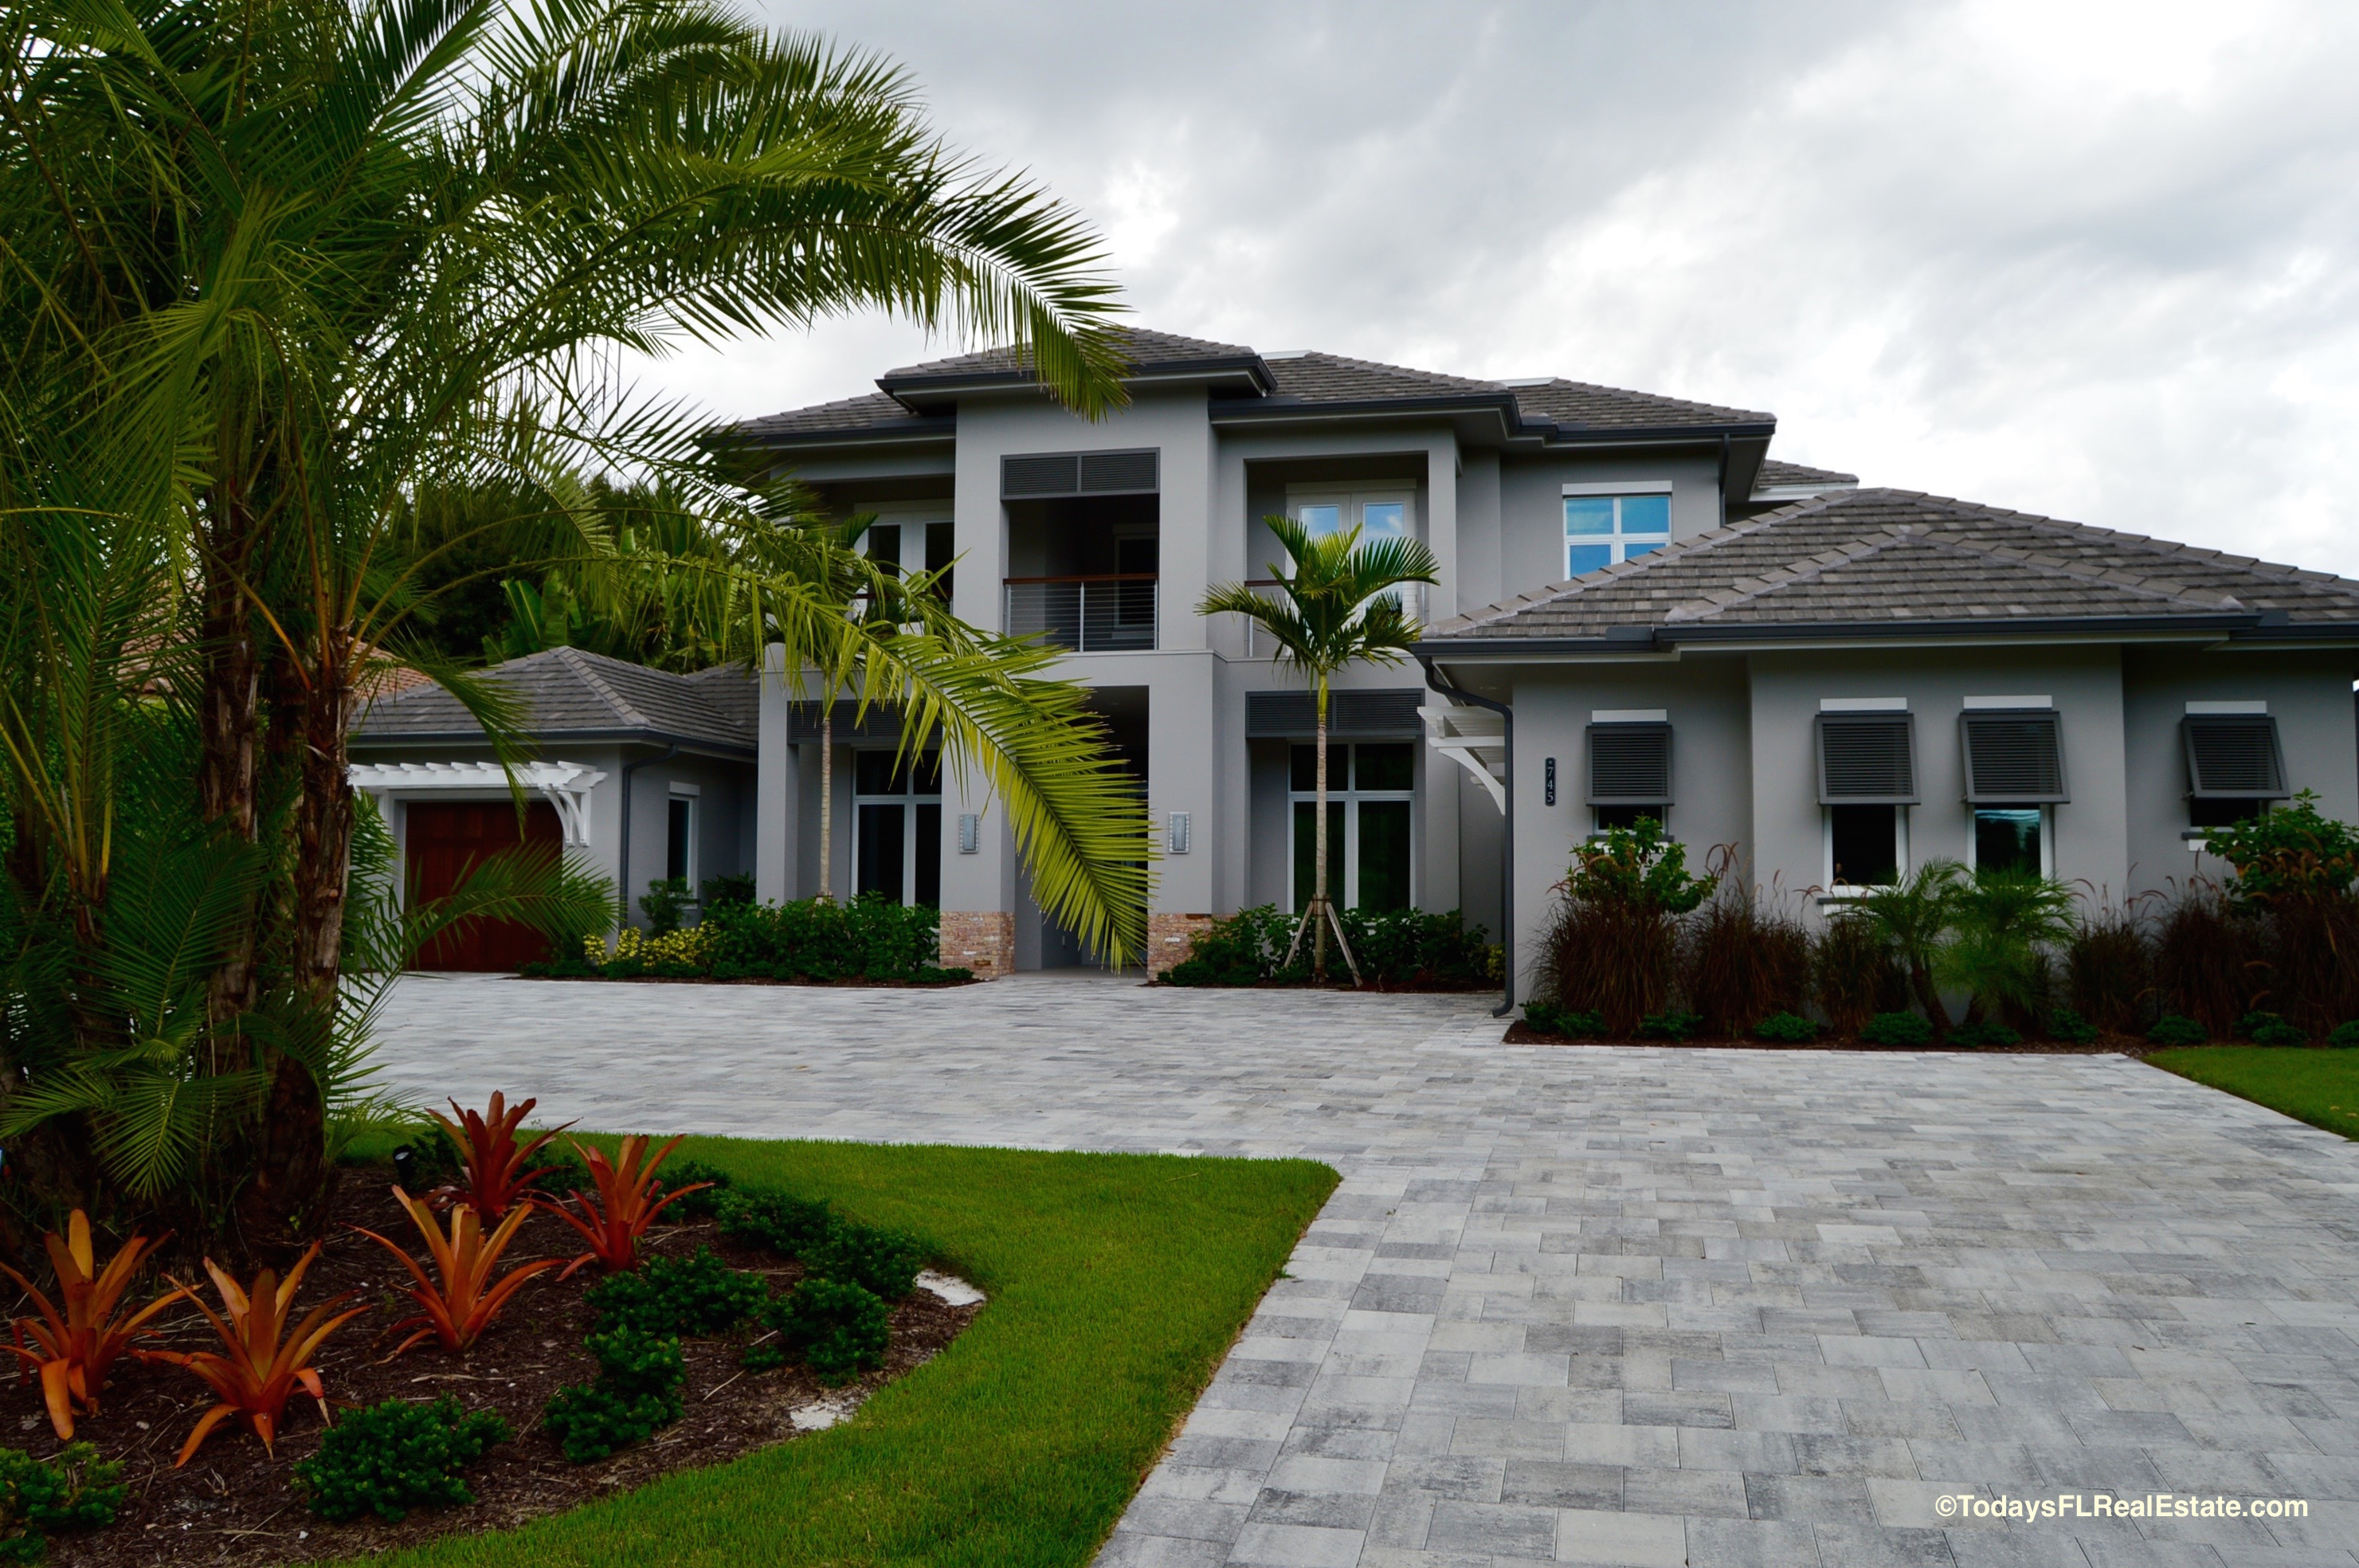 Home Values In Southwest Florida, Southwest Florida Luxury Homes